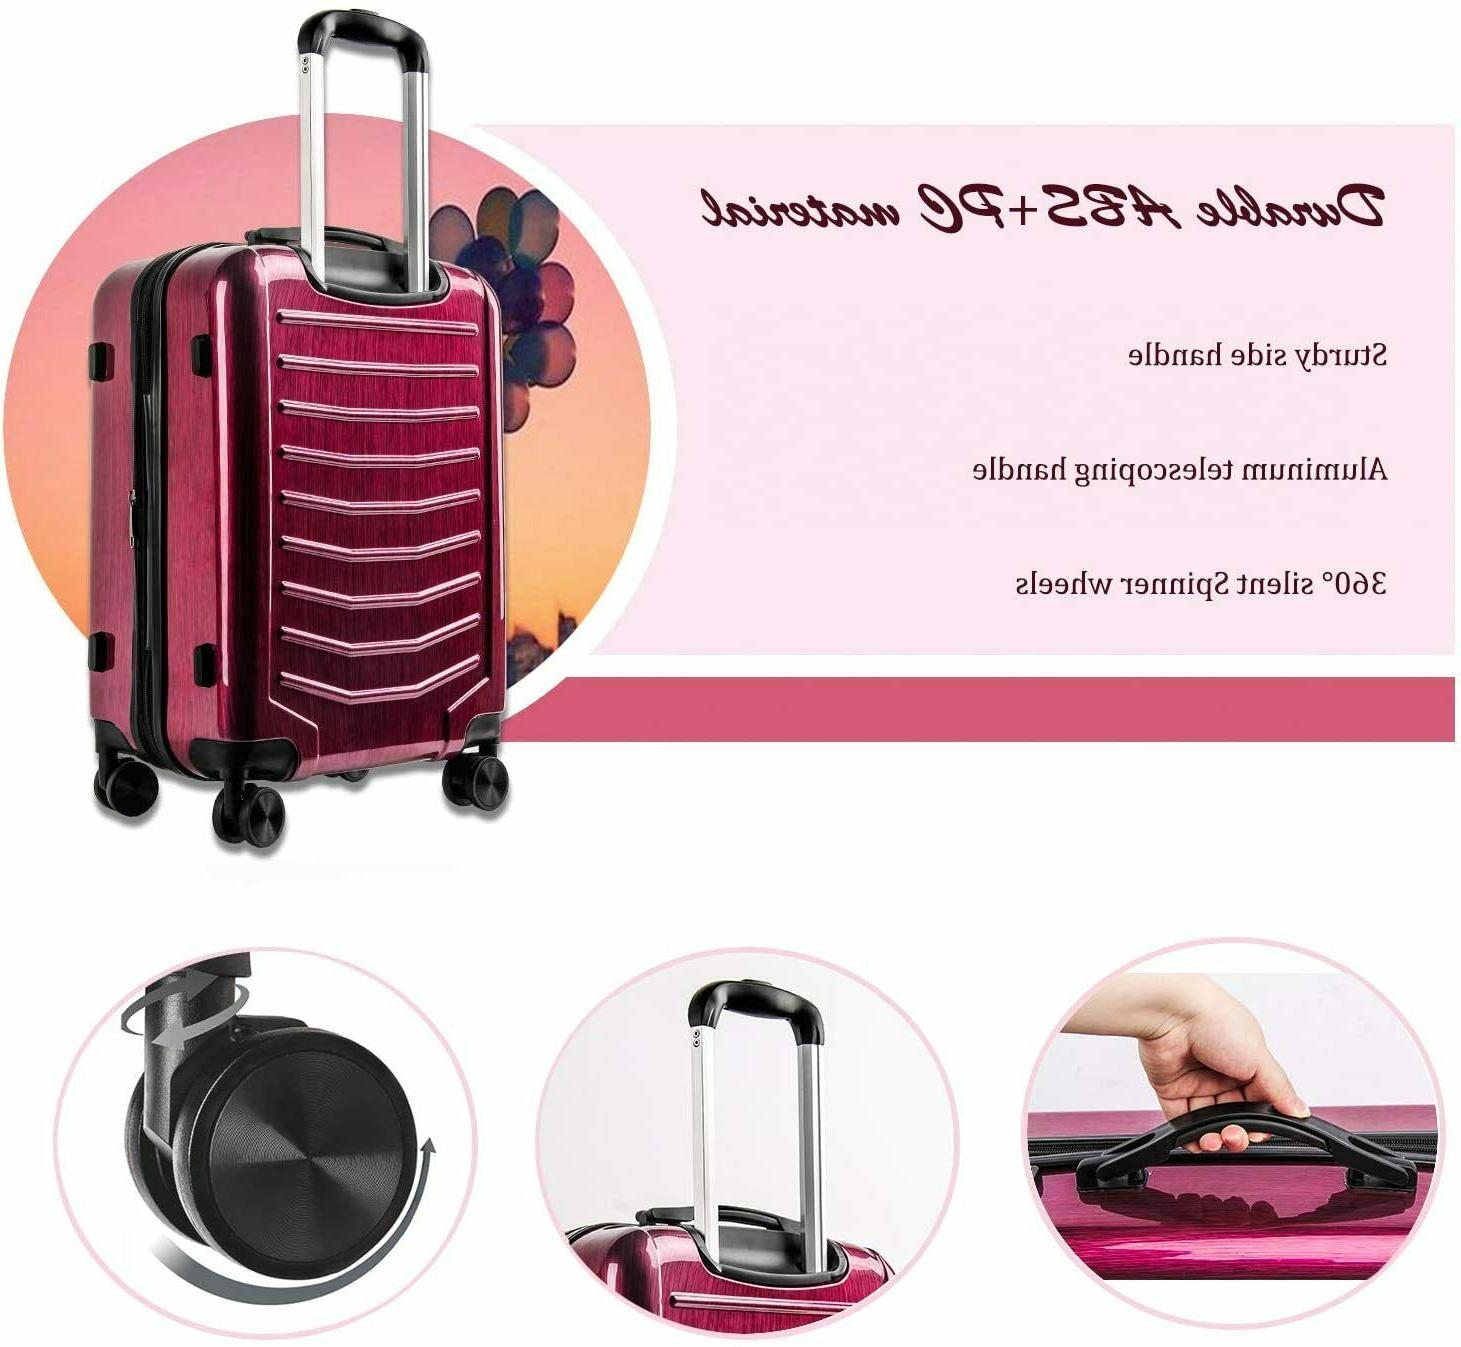 CarryOne Inch on Luggage Travel Sile